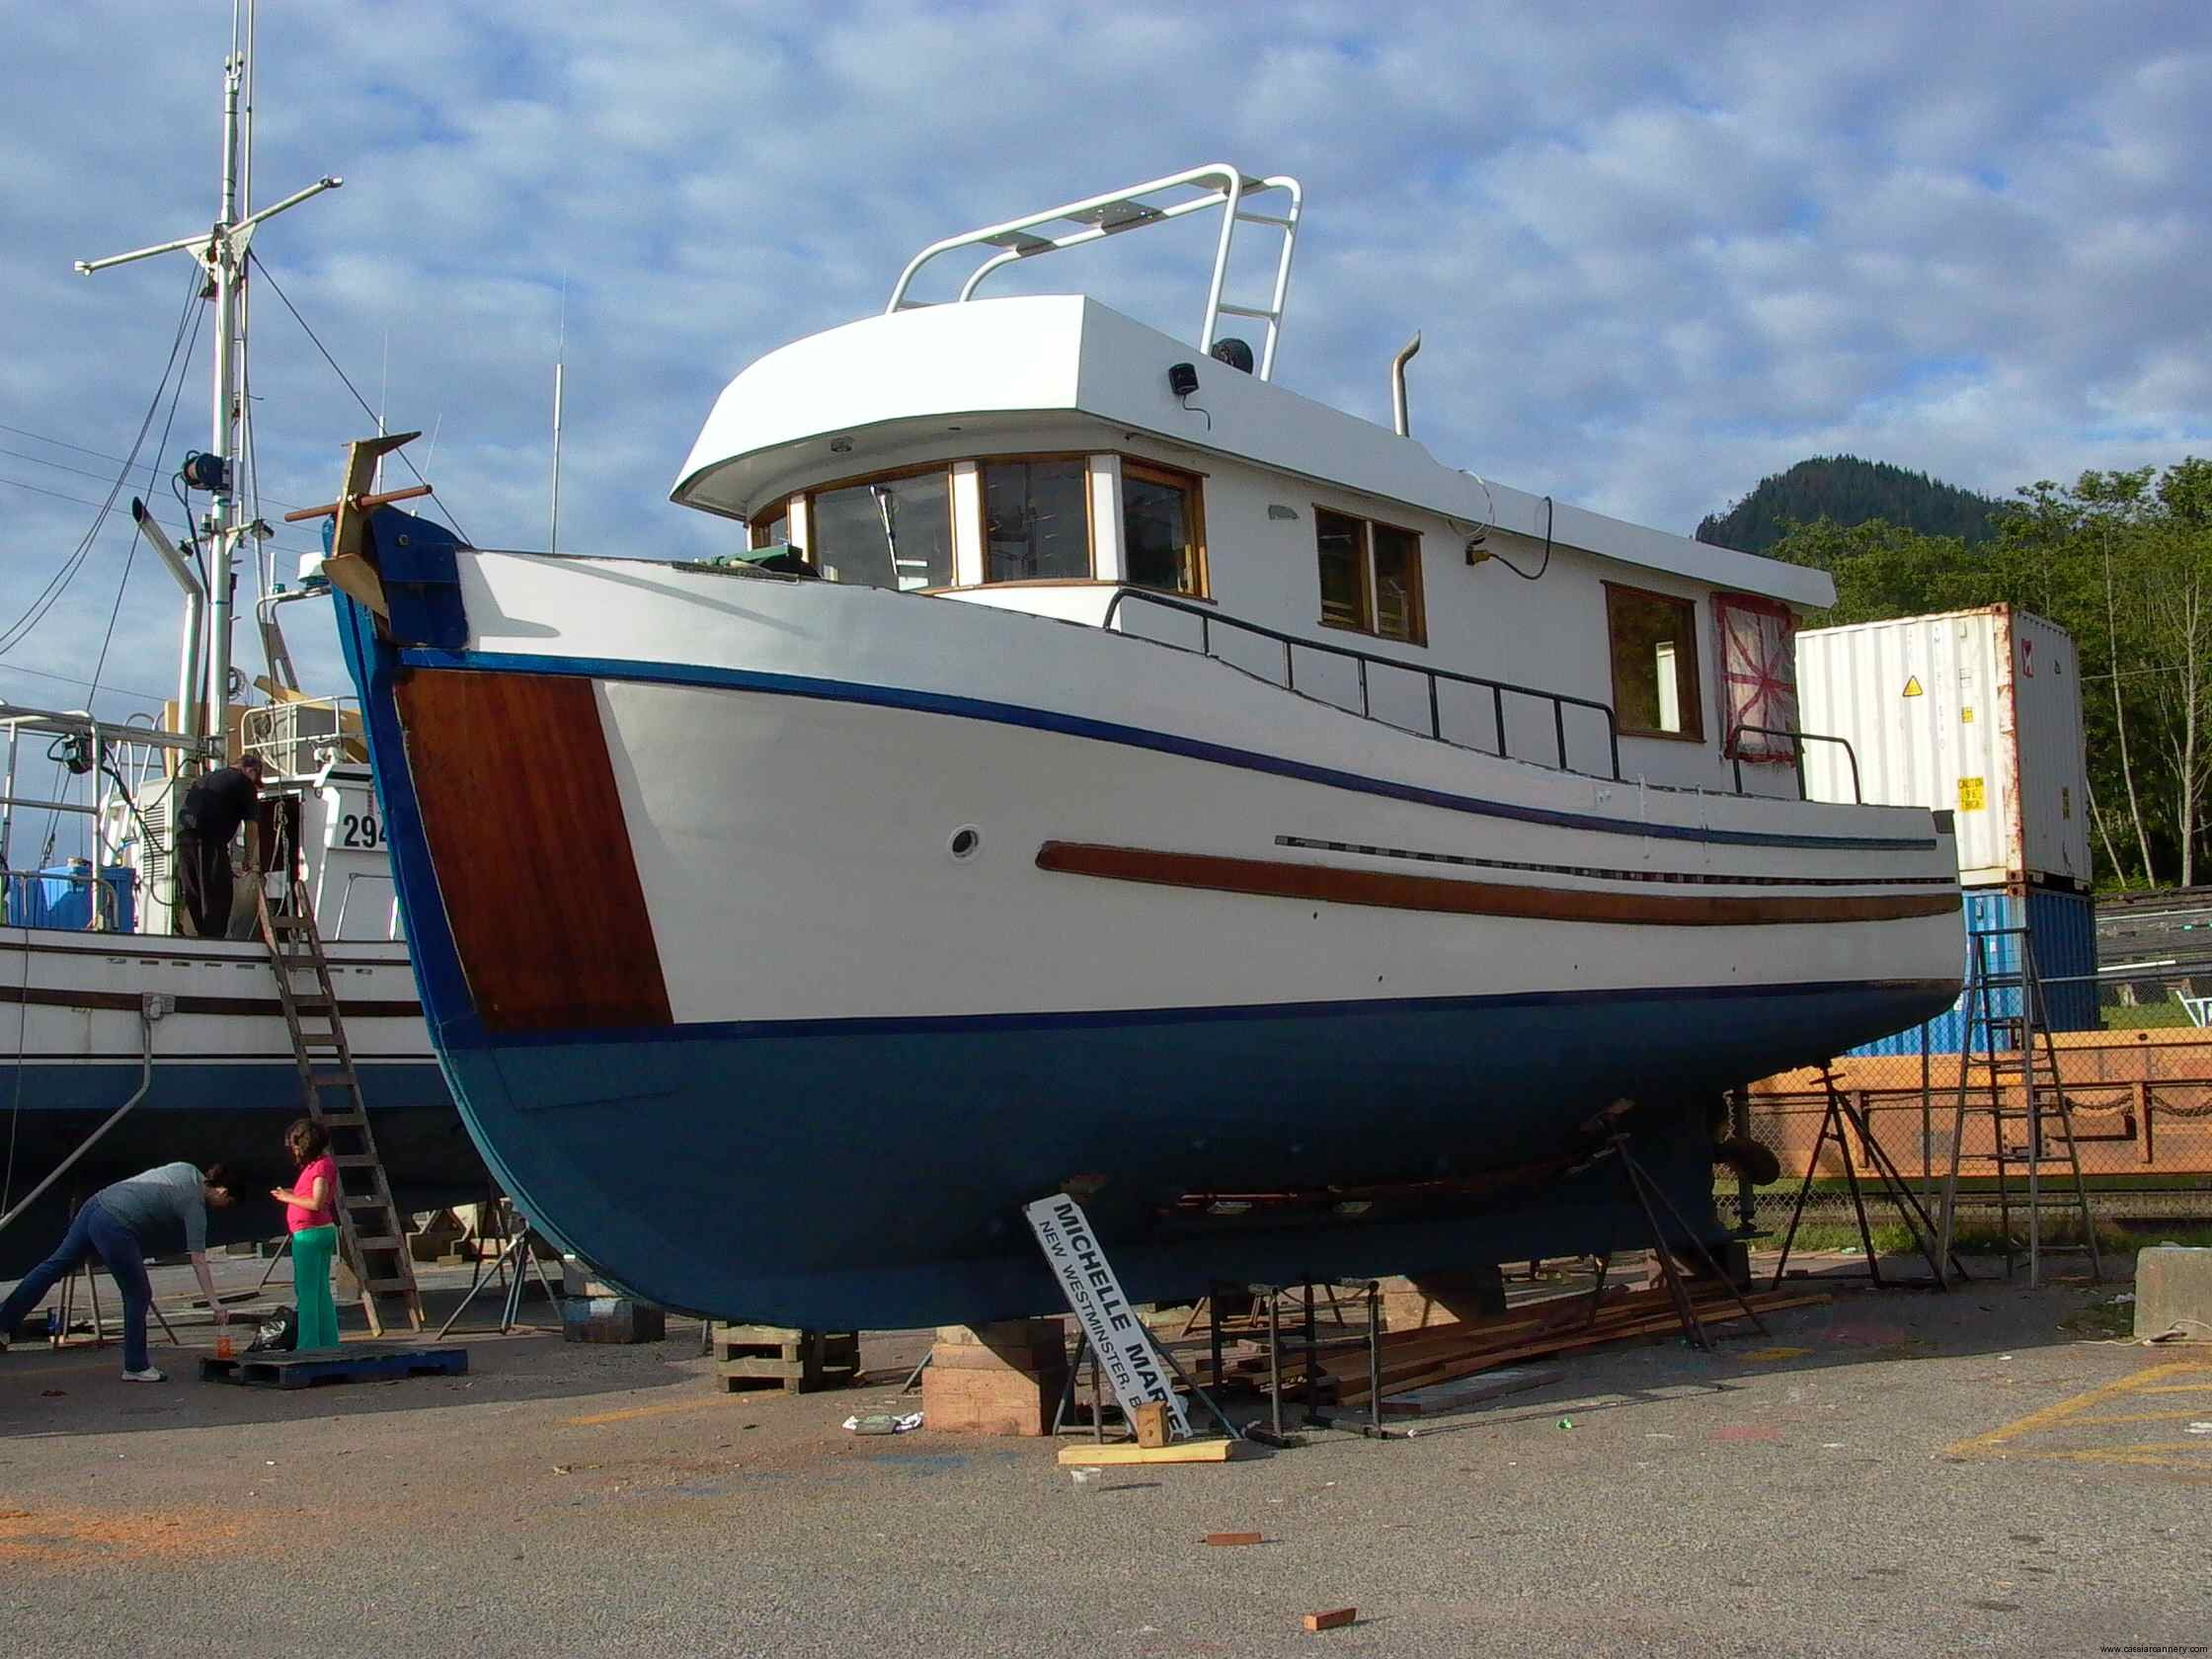 Cassiar Cannery - Poseidon Marine - Michelle Marie - freshly painted